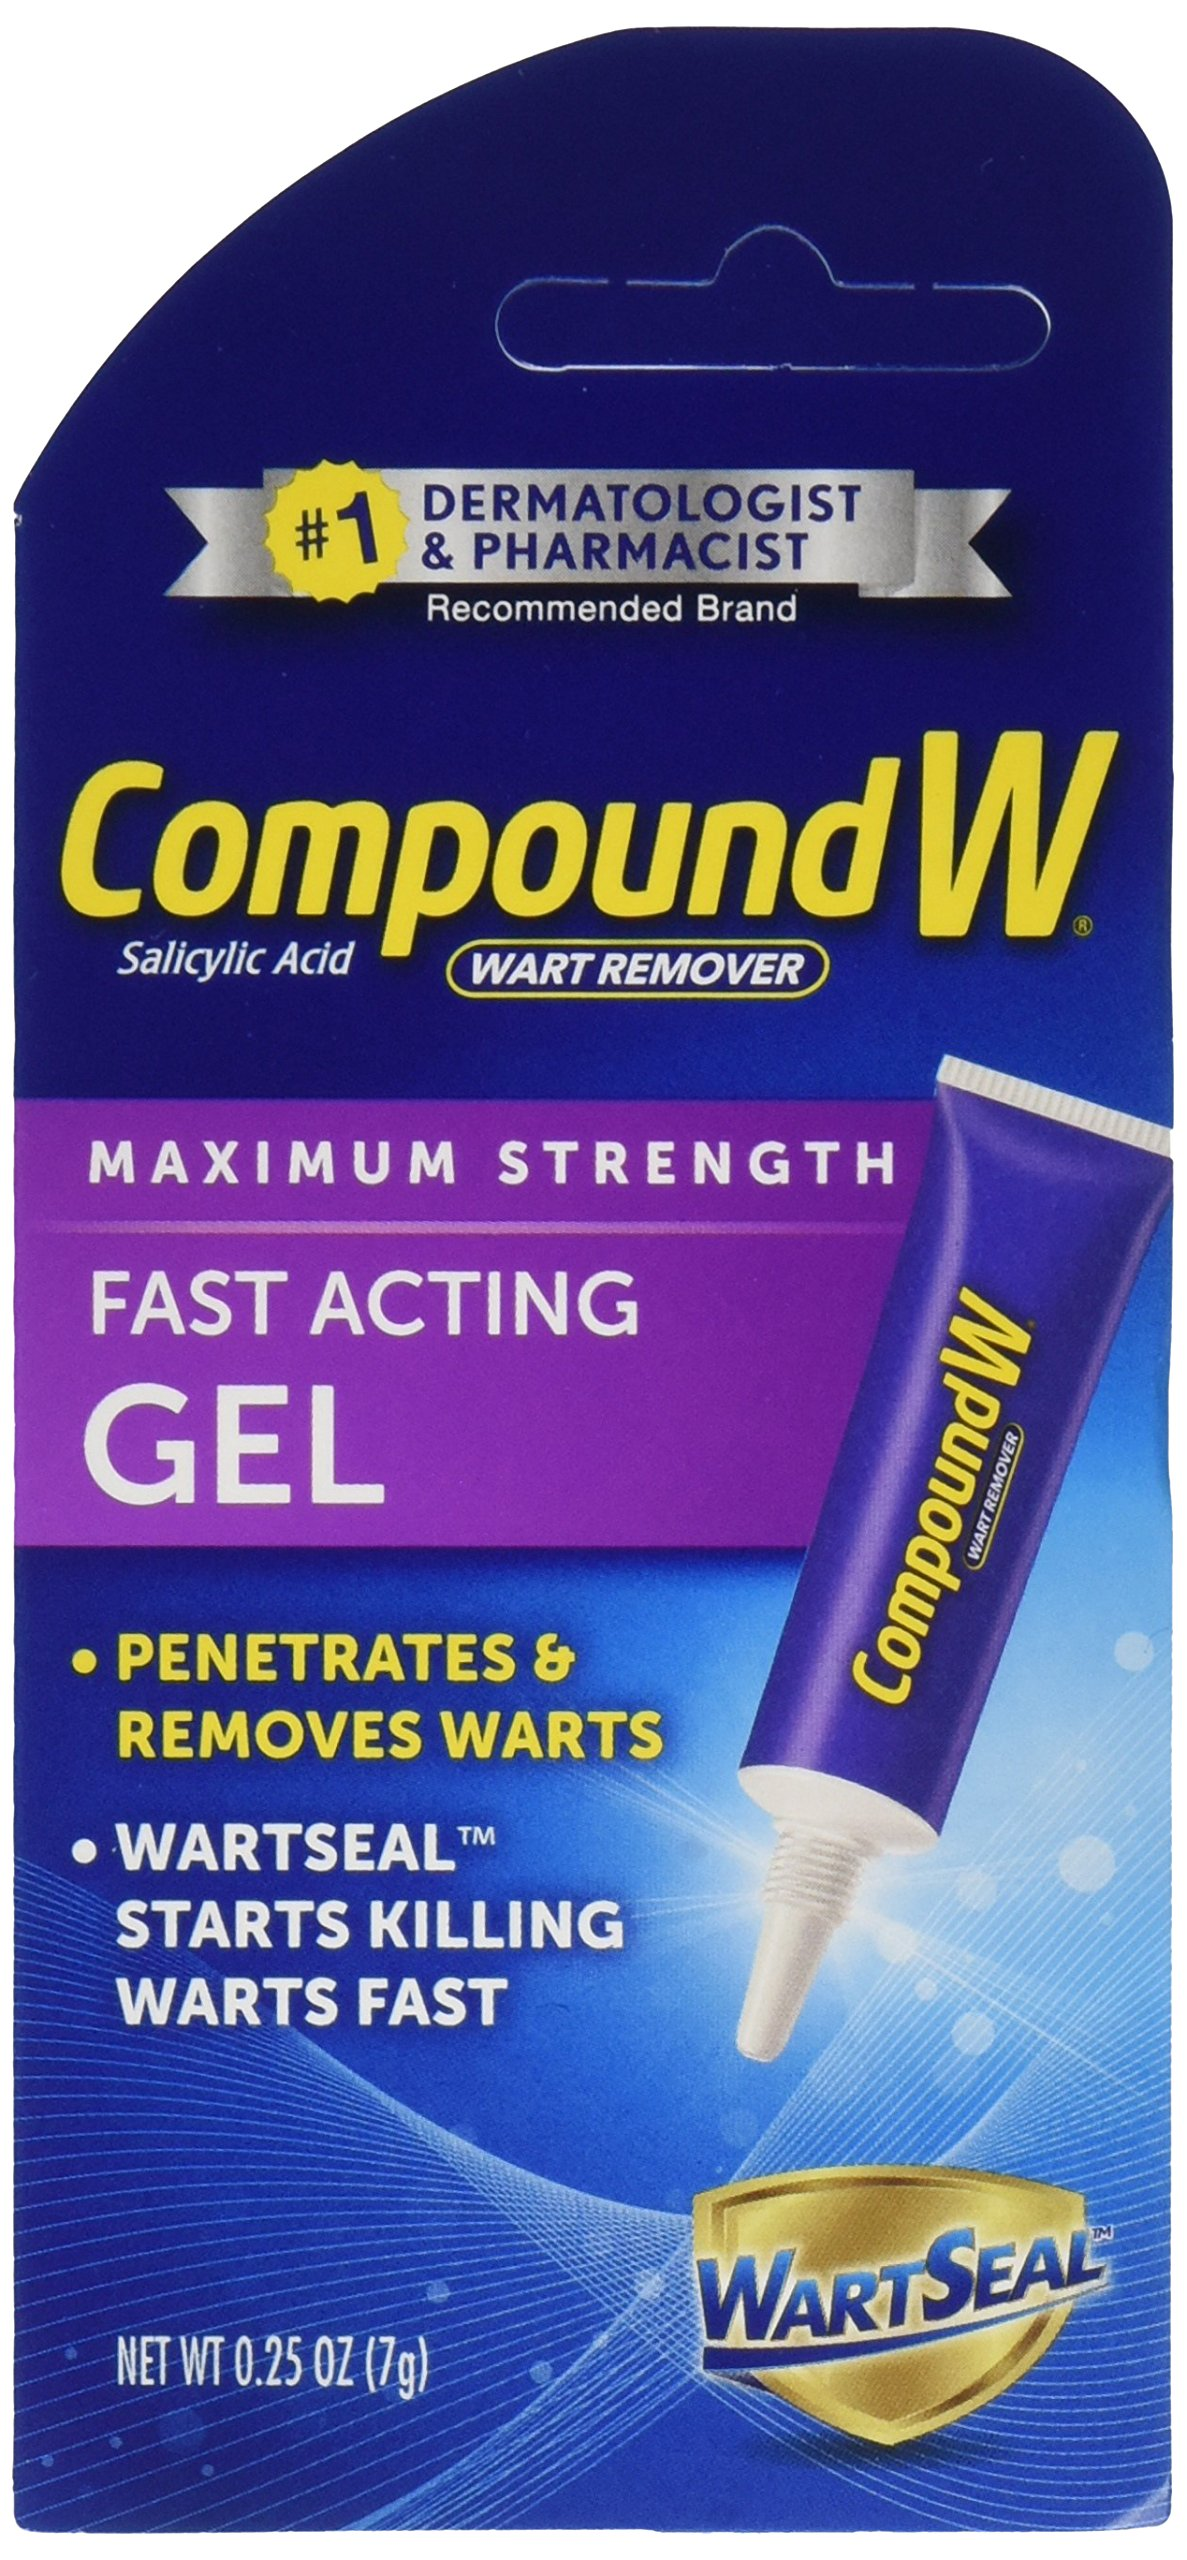 Compound W Salicylic Acid Wart Remover | Maximum Strength Fast Acting Gel | 0.25 oz | (Value Pack of 2) by Compound W (Image #1)